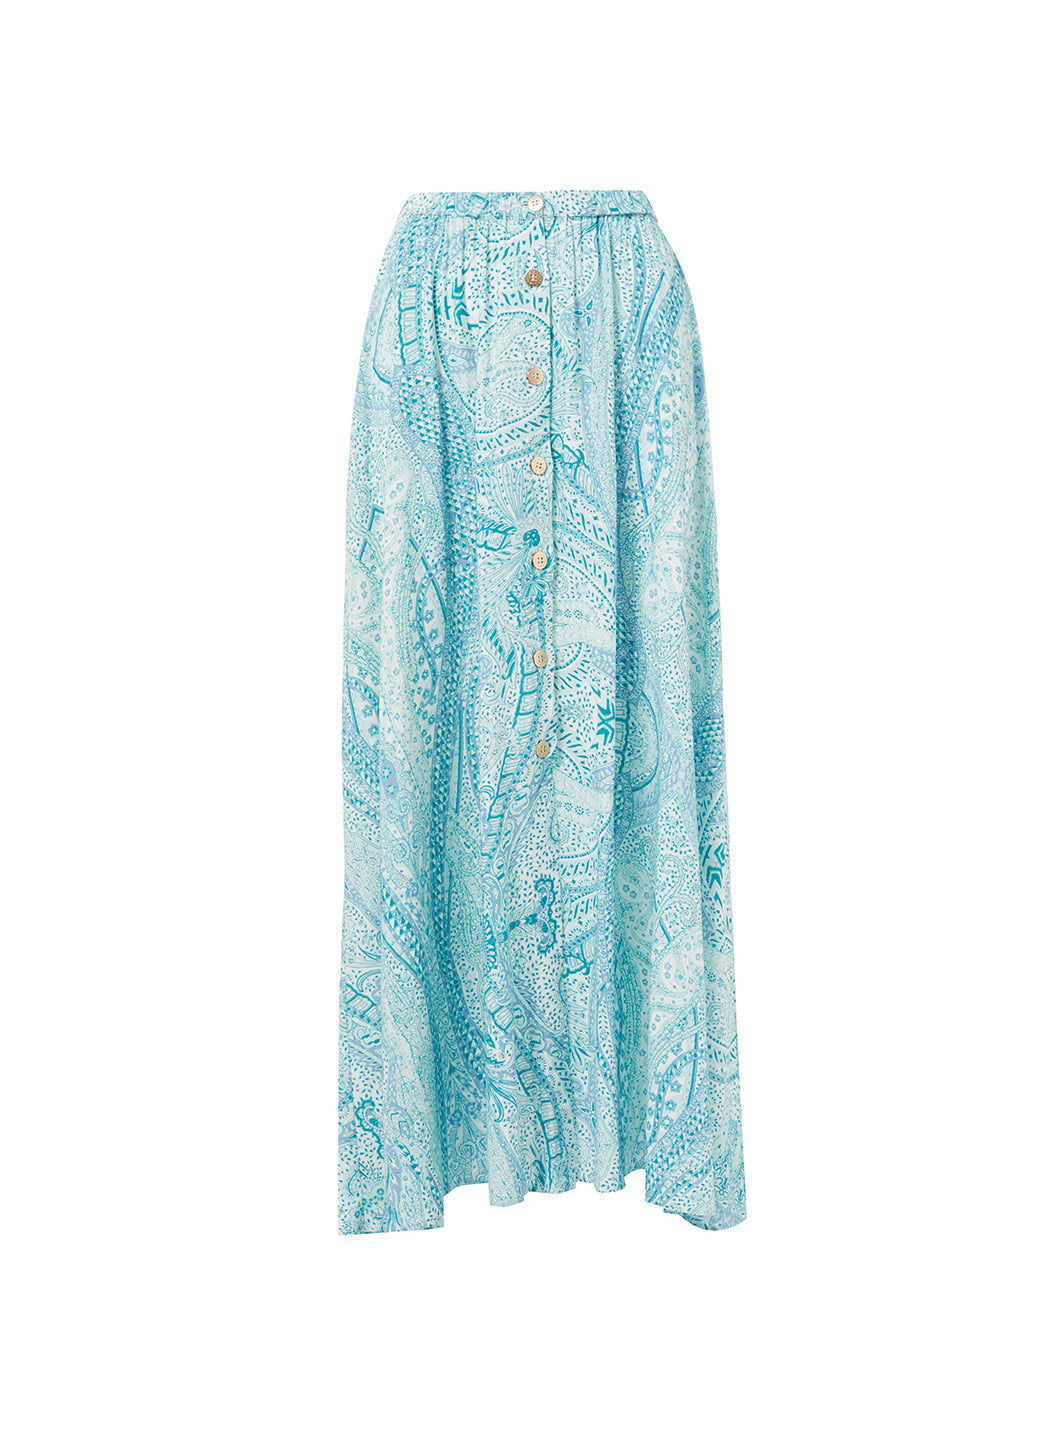 Daisy Paisley Button-Down Maxi Skirt - Melissa Odabash Tops & Bottoms